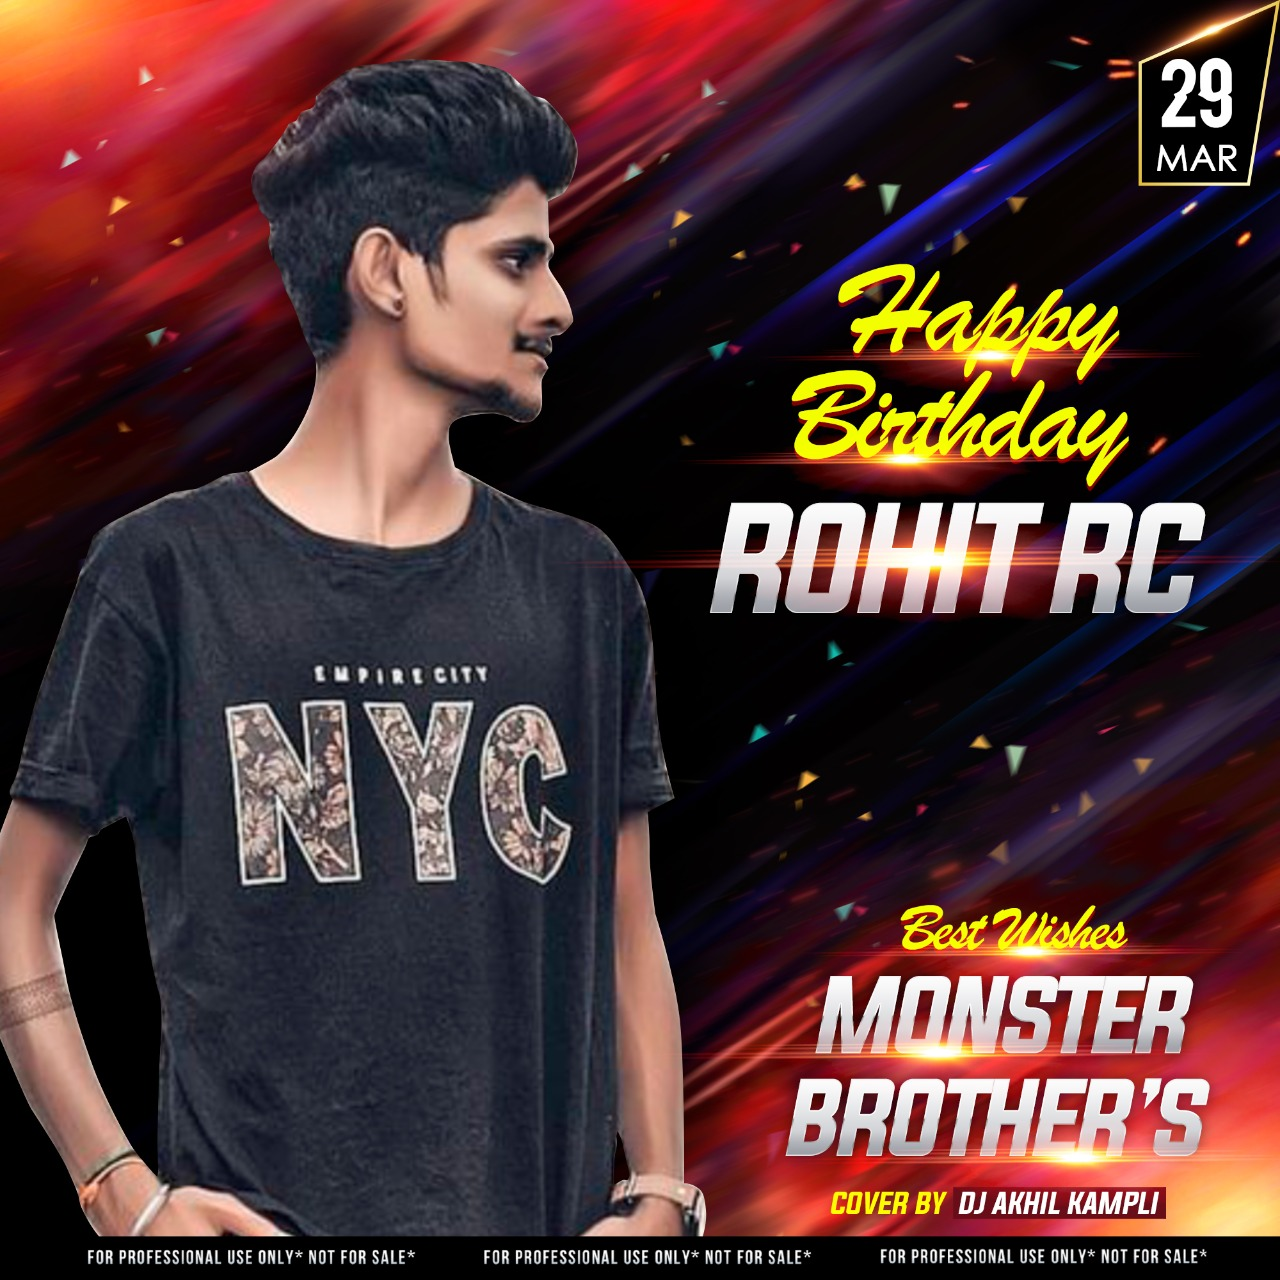 DJ ROHIT RC BIRTHADAY TRACK DJ MONSTER PS DJ AKHIL KAMPLI